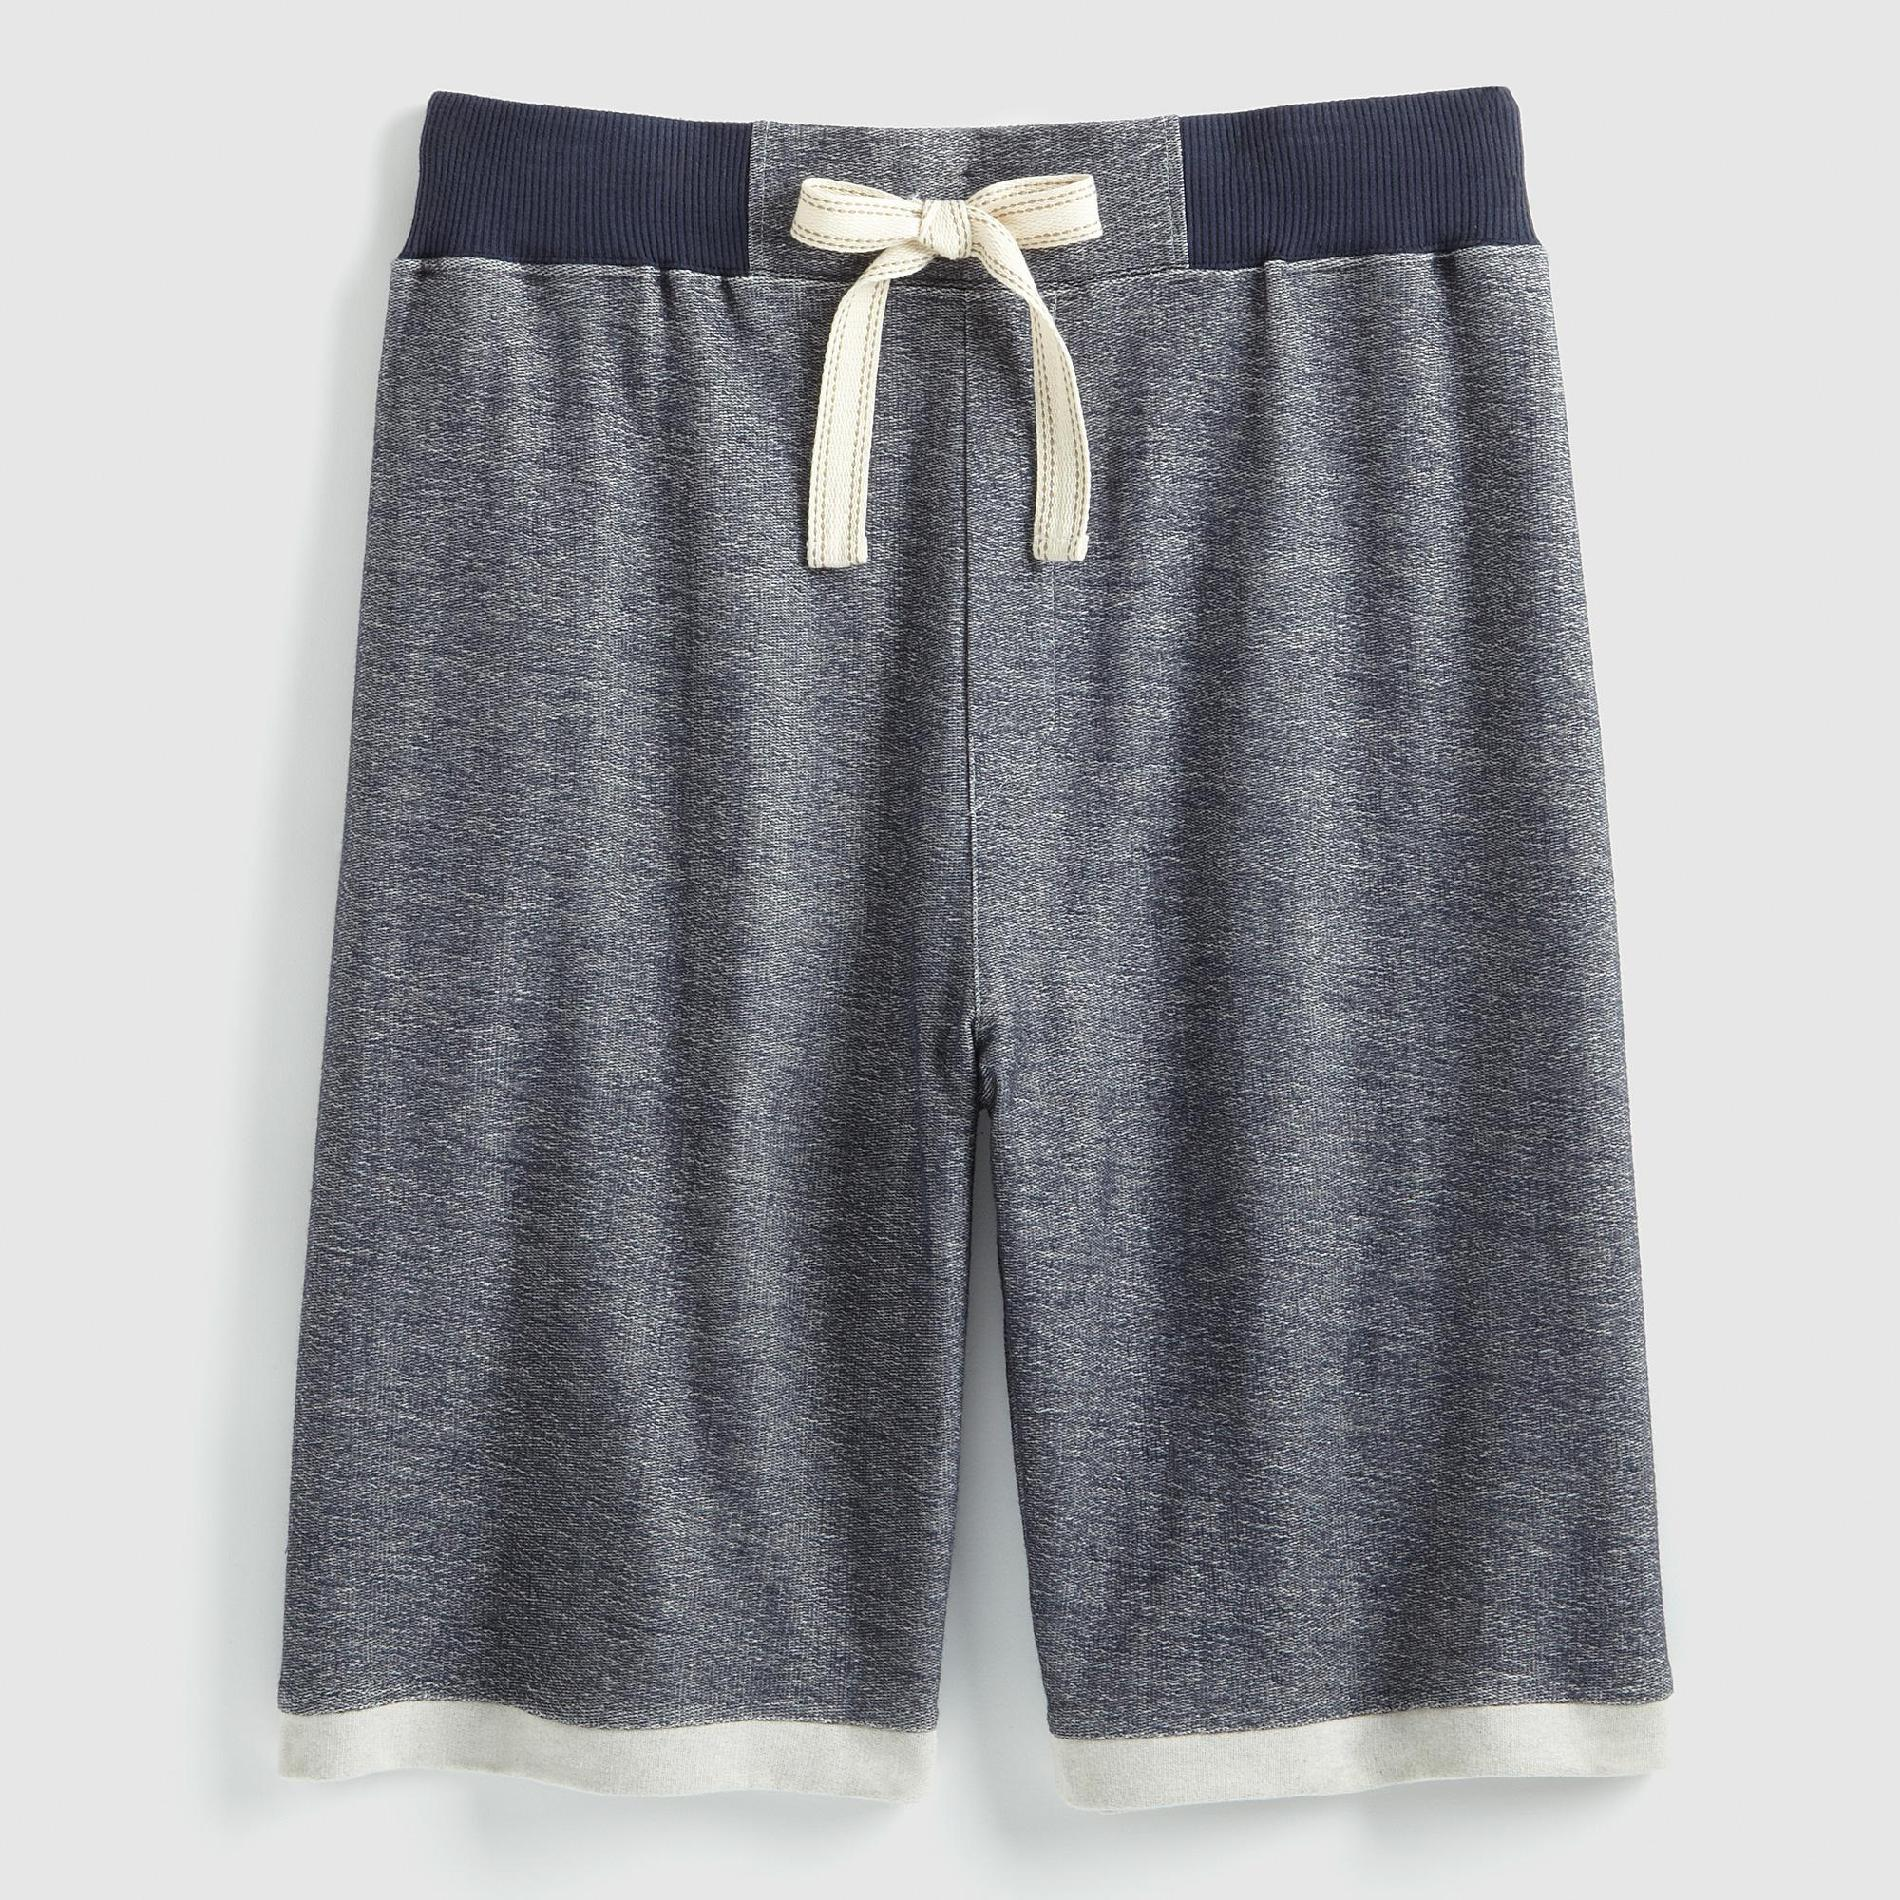 Joe Boxer Men's Knit Shorts at Kmart.com